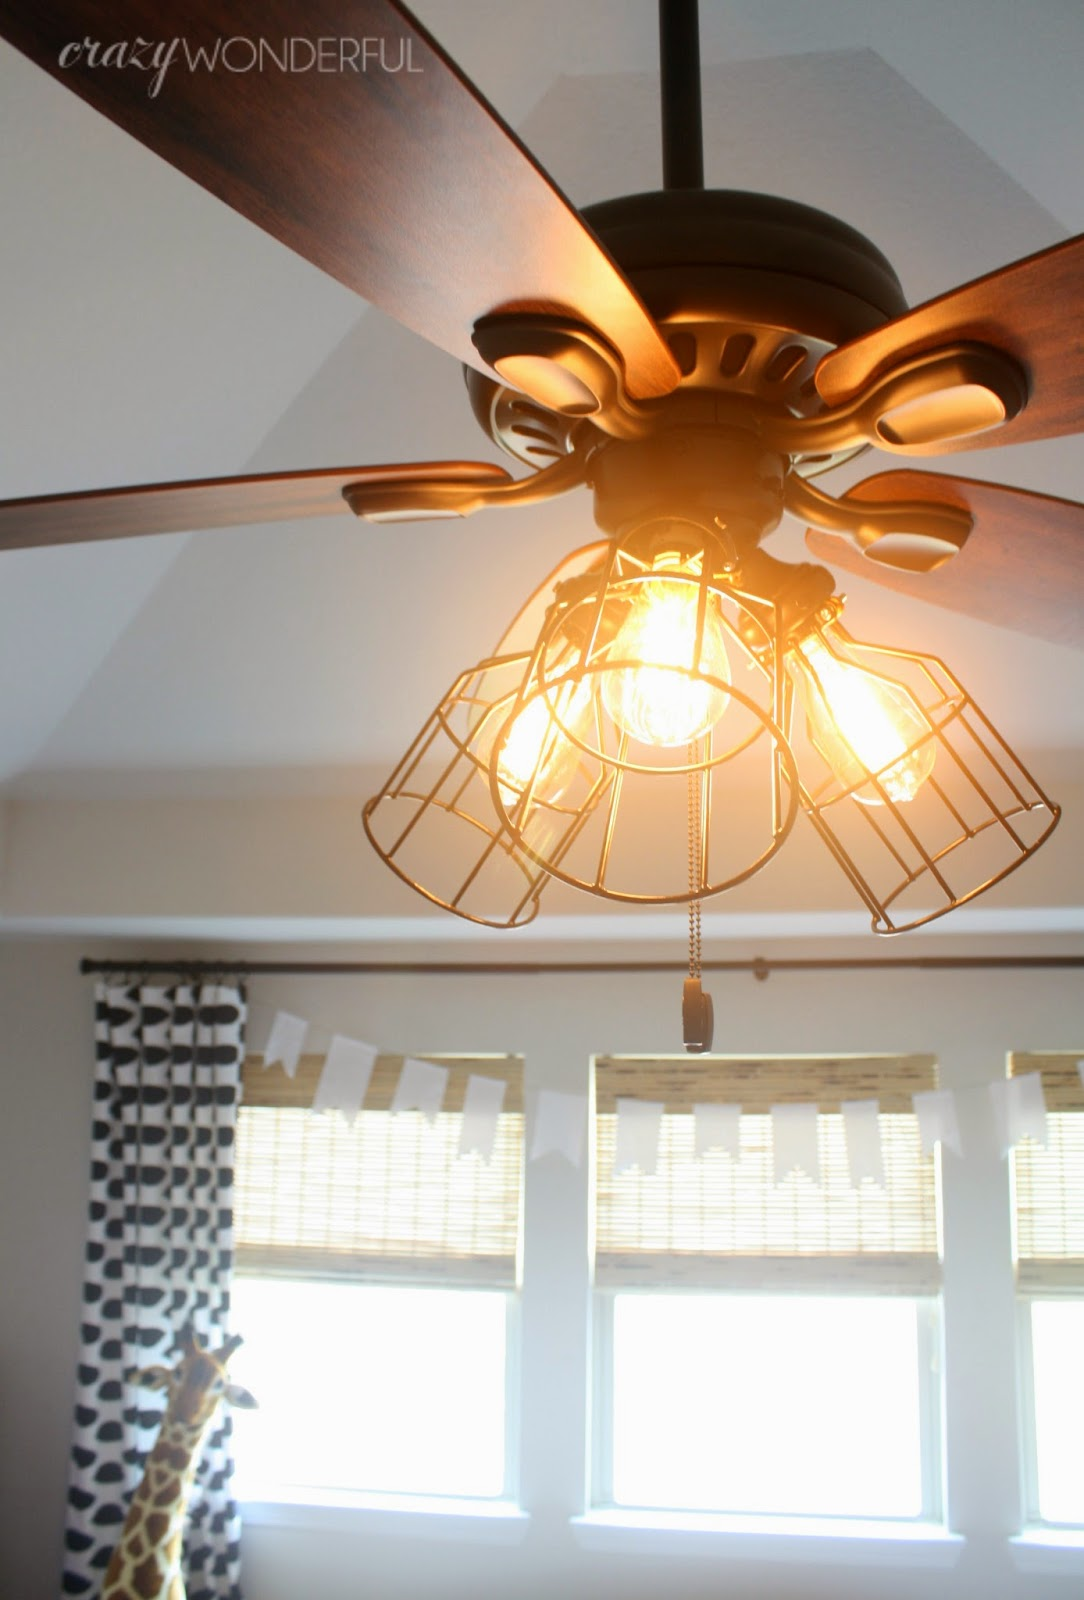 This Was SUCH An Easy Way To Switch Up The Look Of The Fan. The Fan Itself  Is Actually The Exact Same Fan I Used In Our Master Bedroom And Put A ...